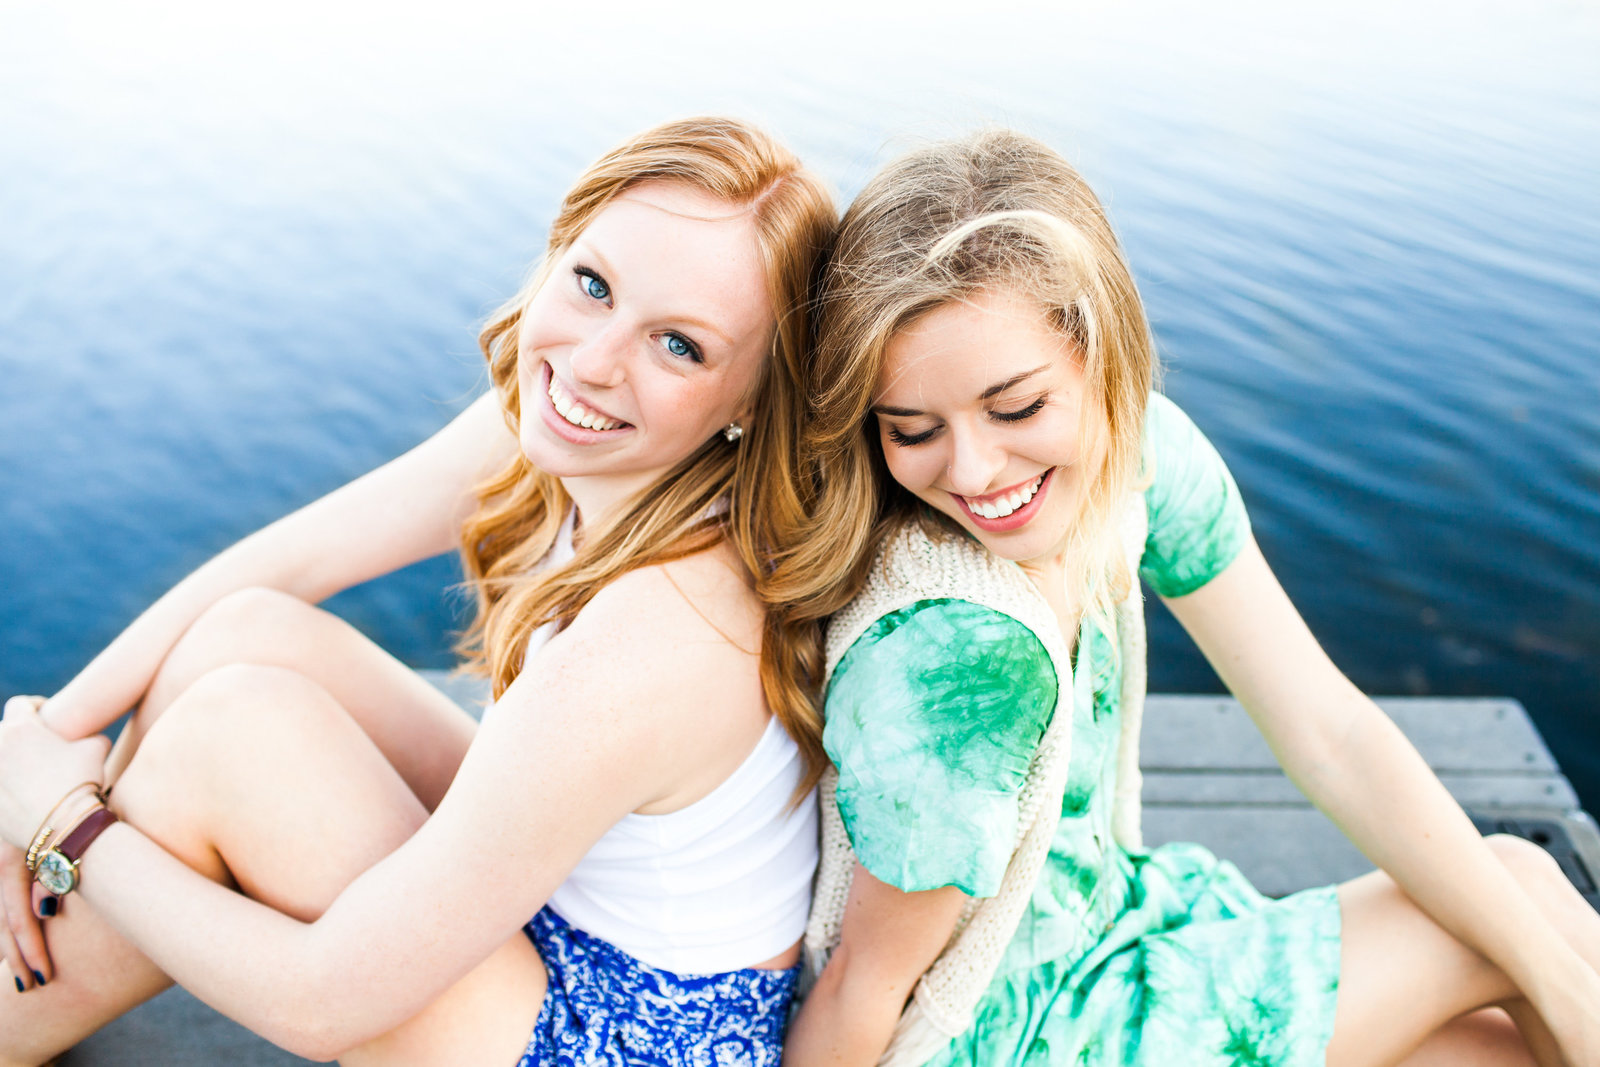 Sisters back to back laughing on a dock by blue water